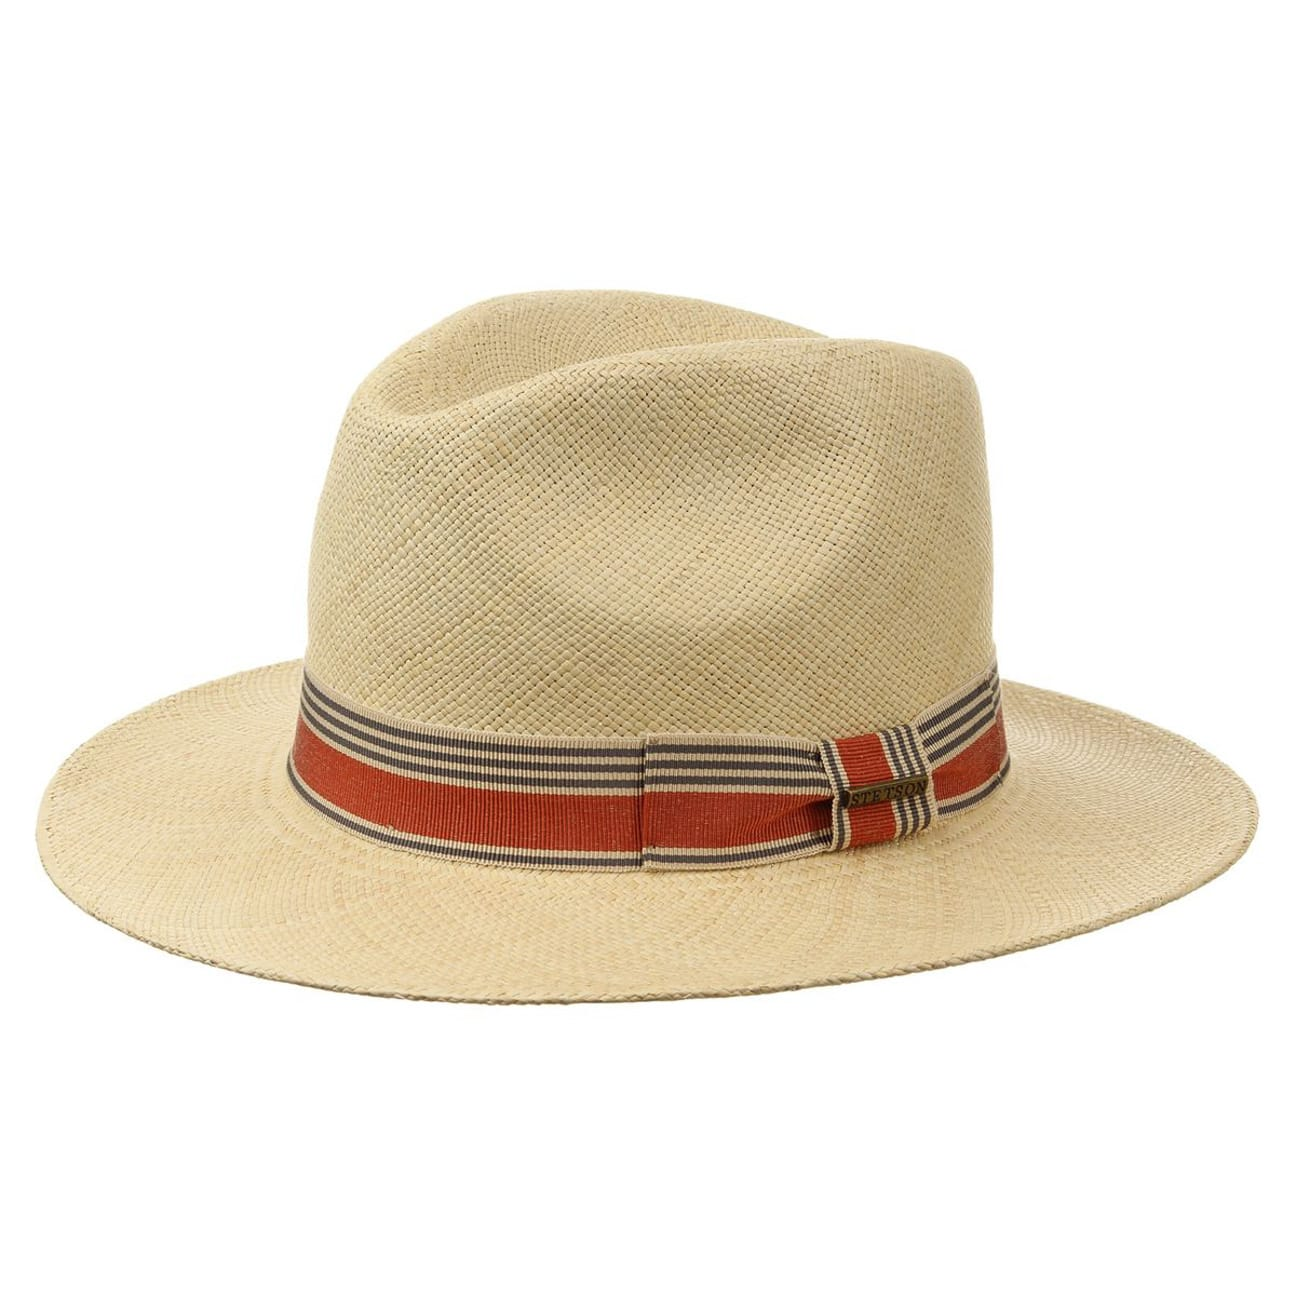 c49cf14a02c Groton Panama Straw Hat by Stetson - nature 1